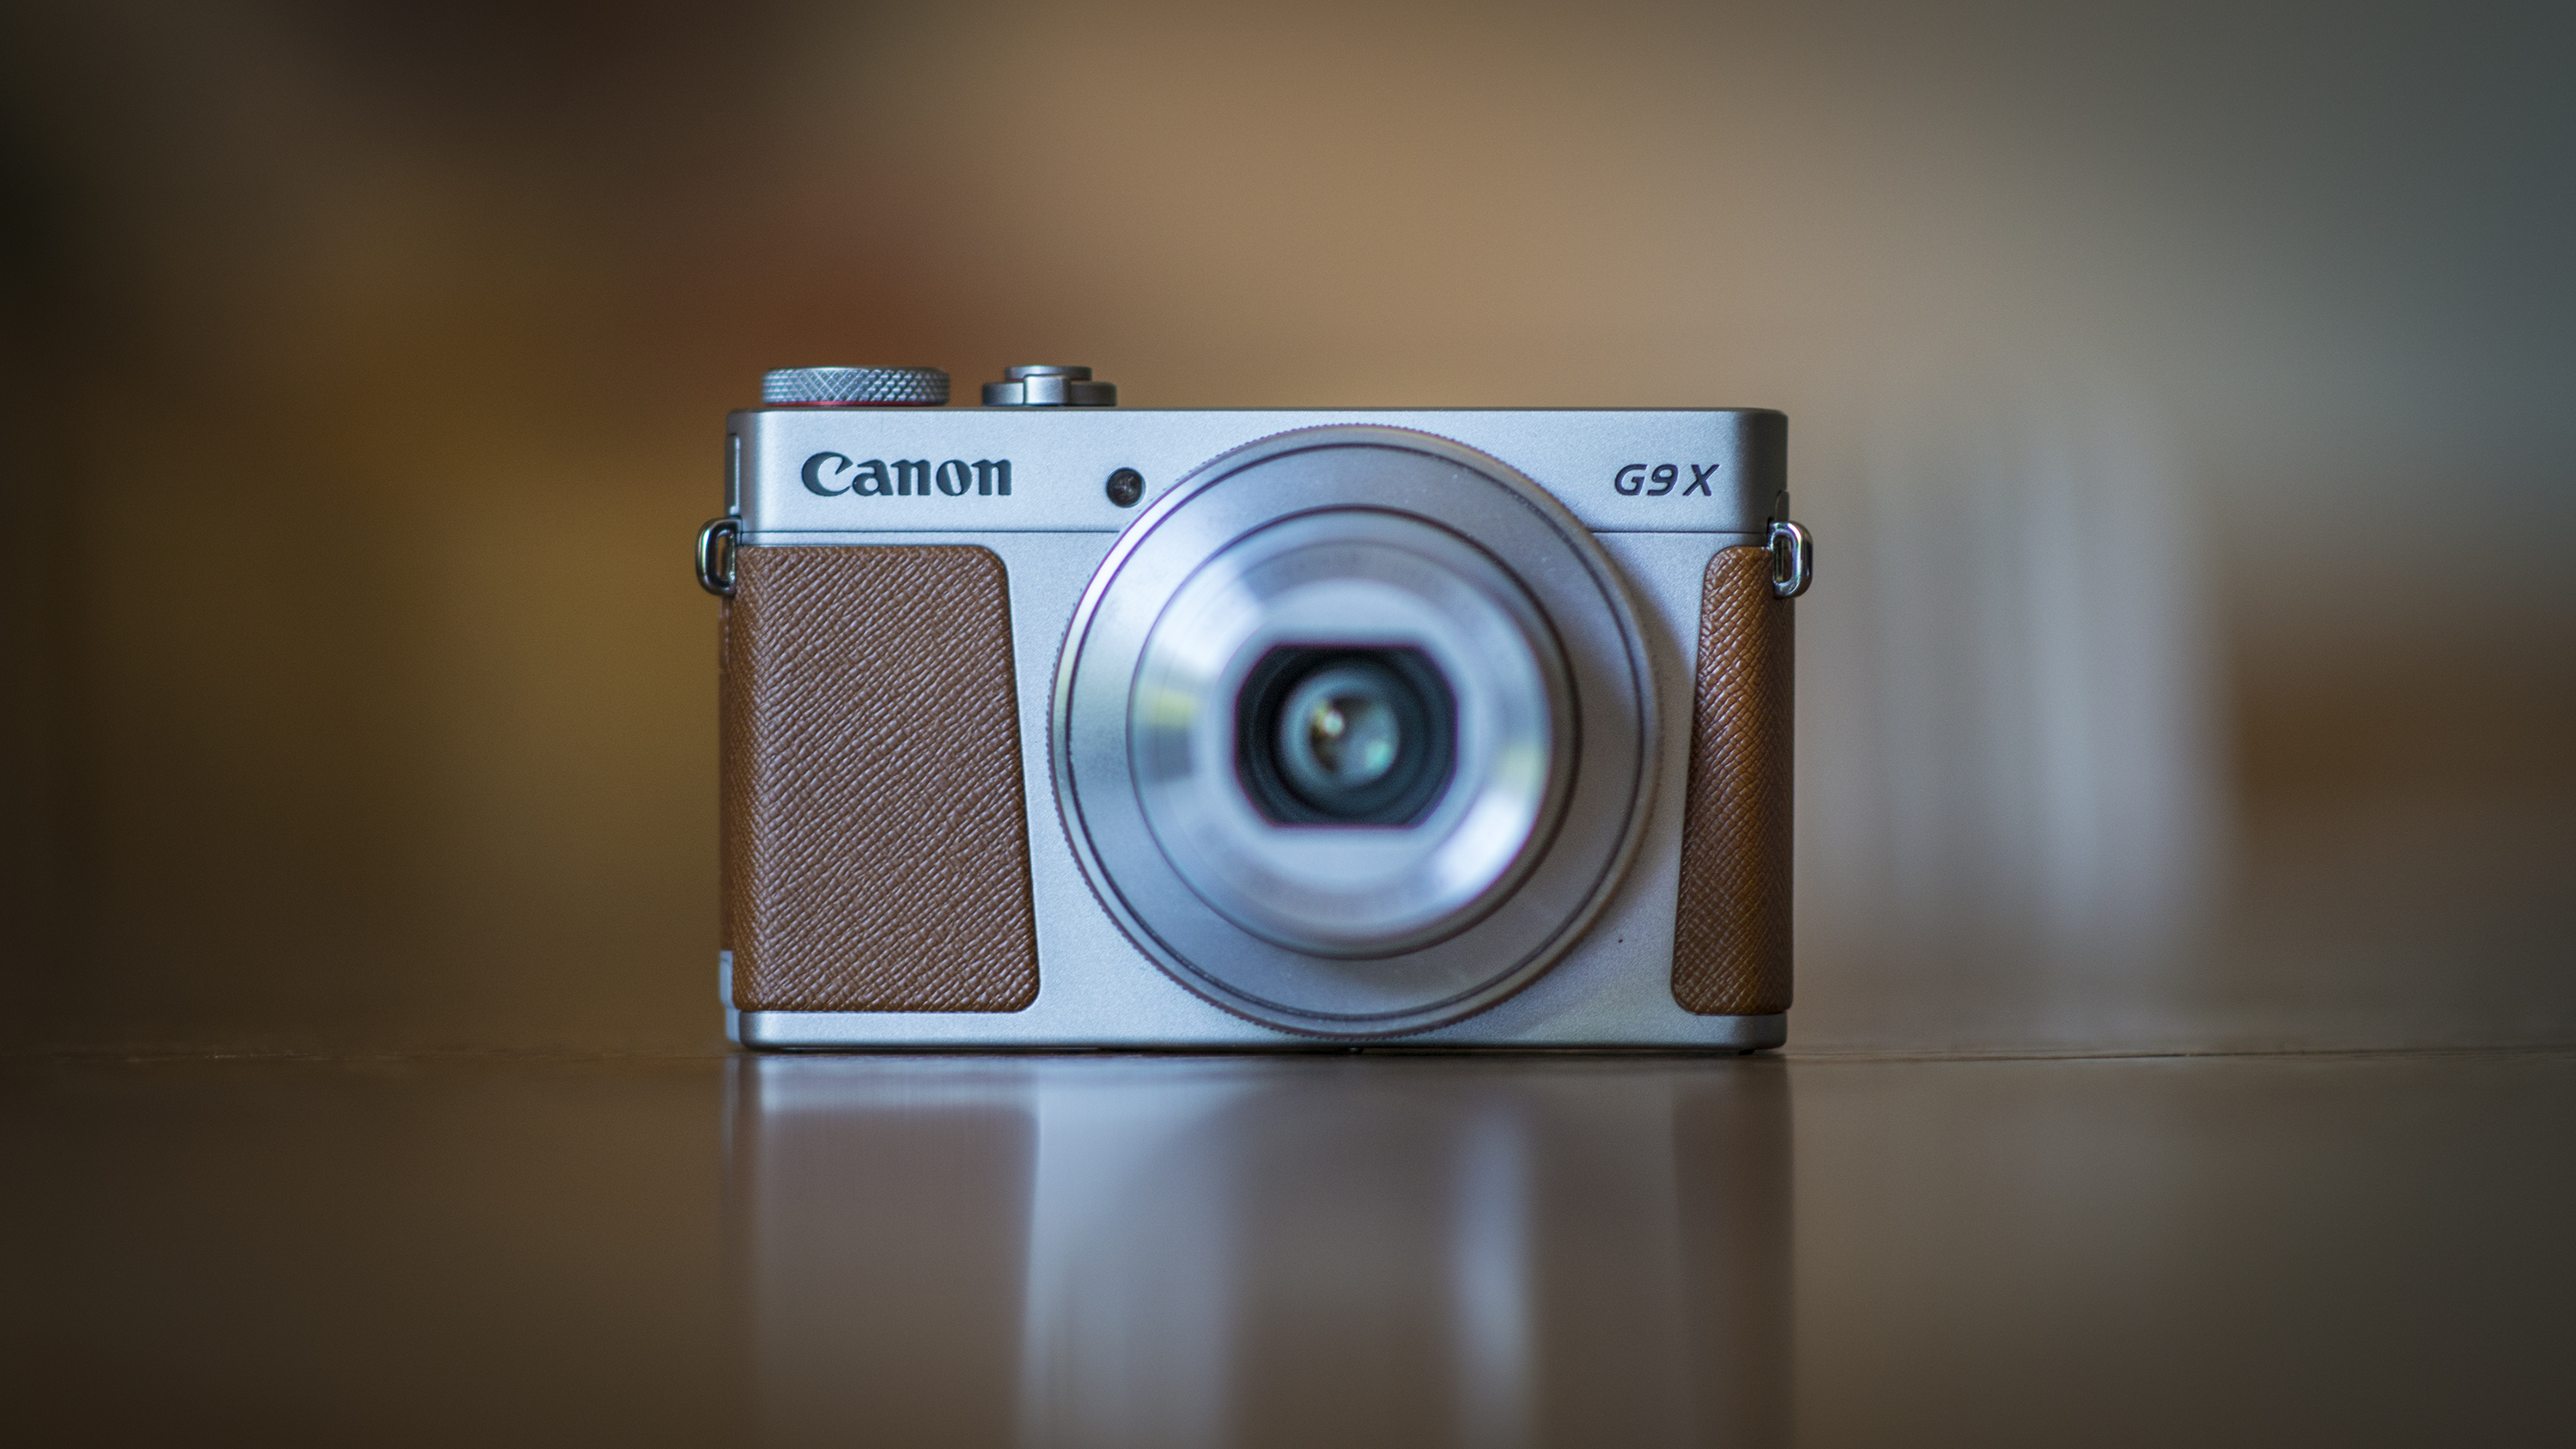 Best compact camera: Canon PowerShot G9 X Mark II